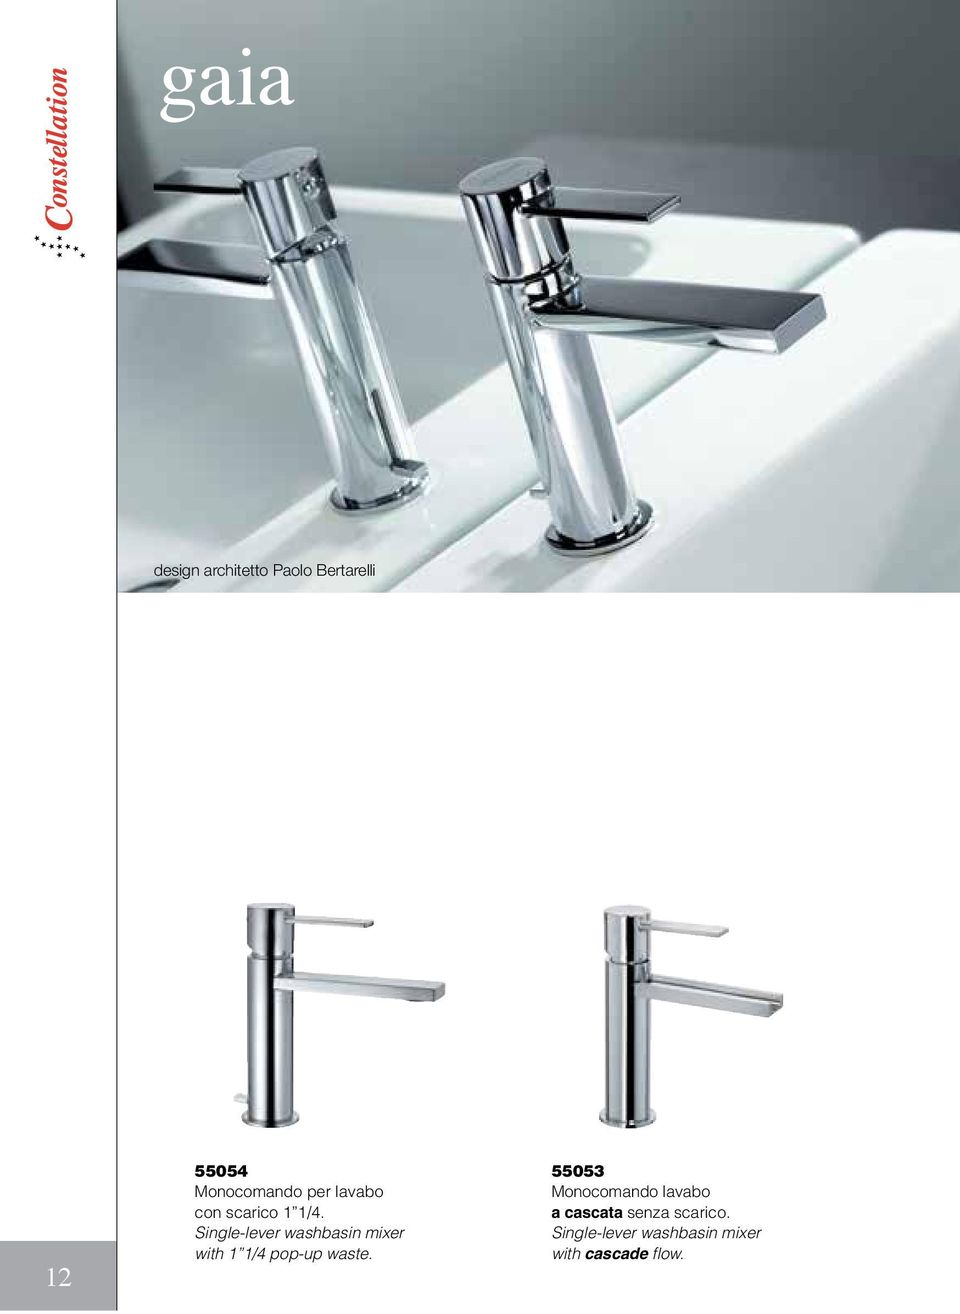 Single-lever washbasin mixer with 1 1/4 pop-up waste.